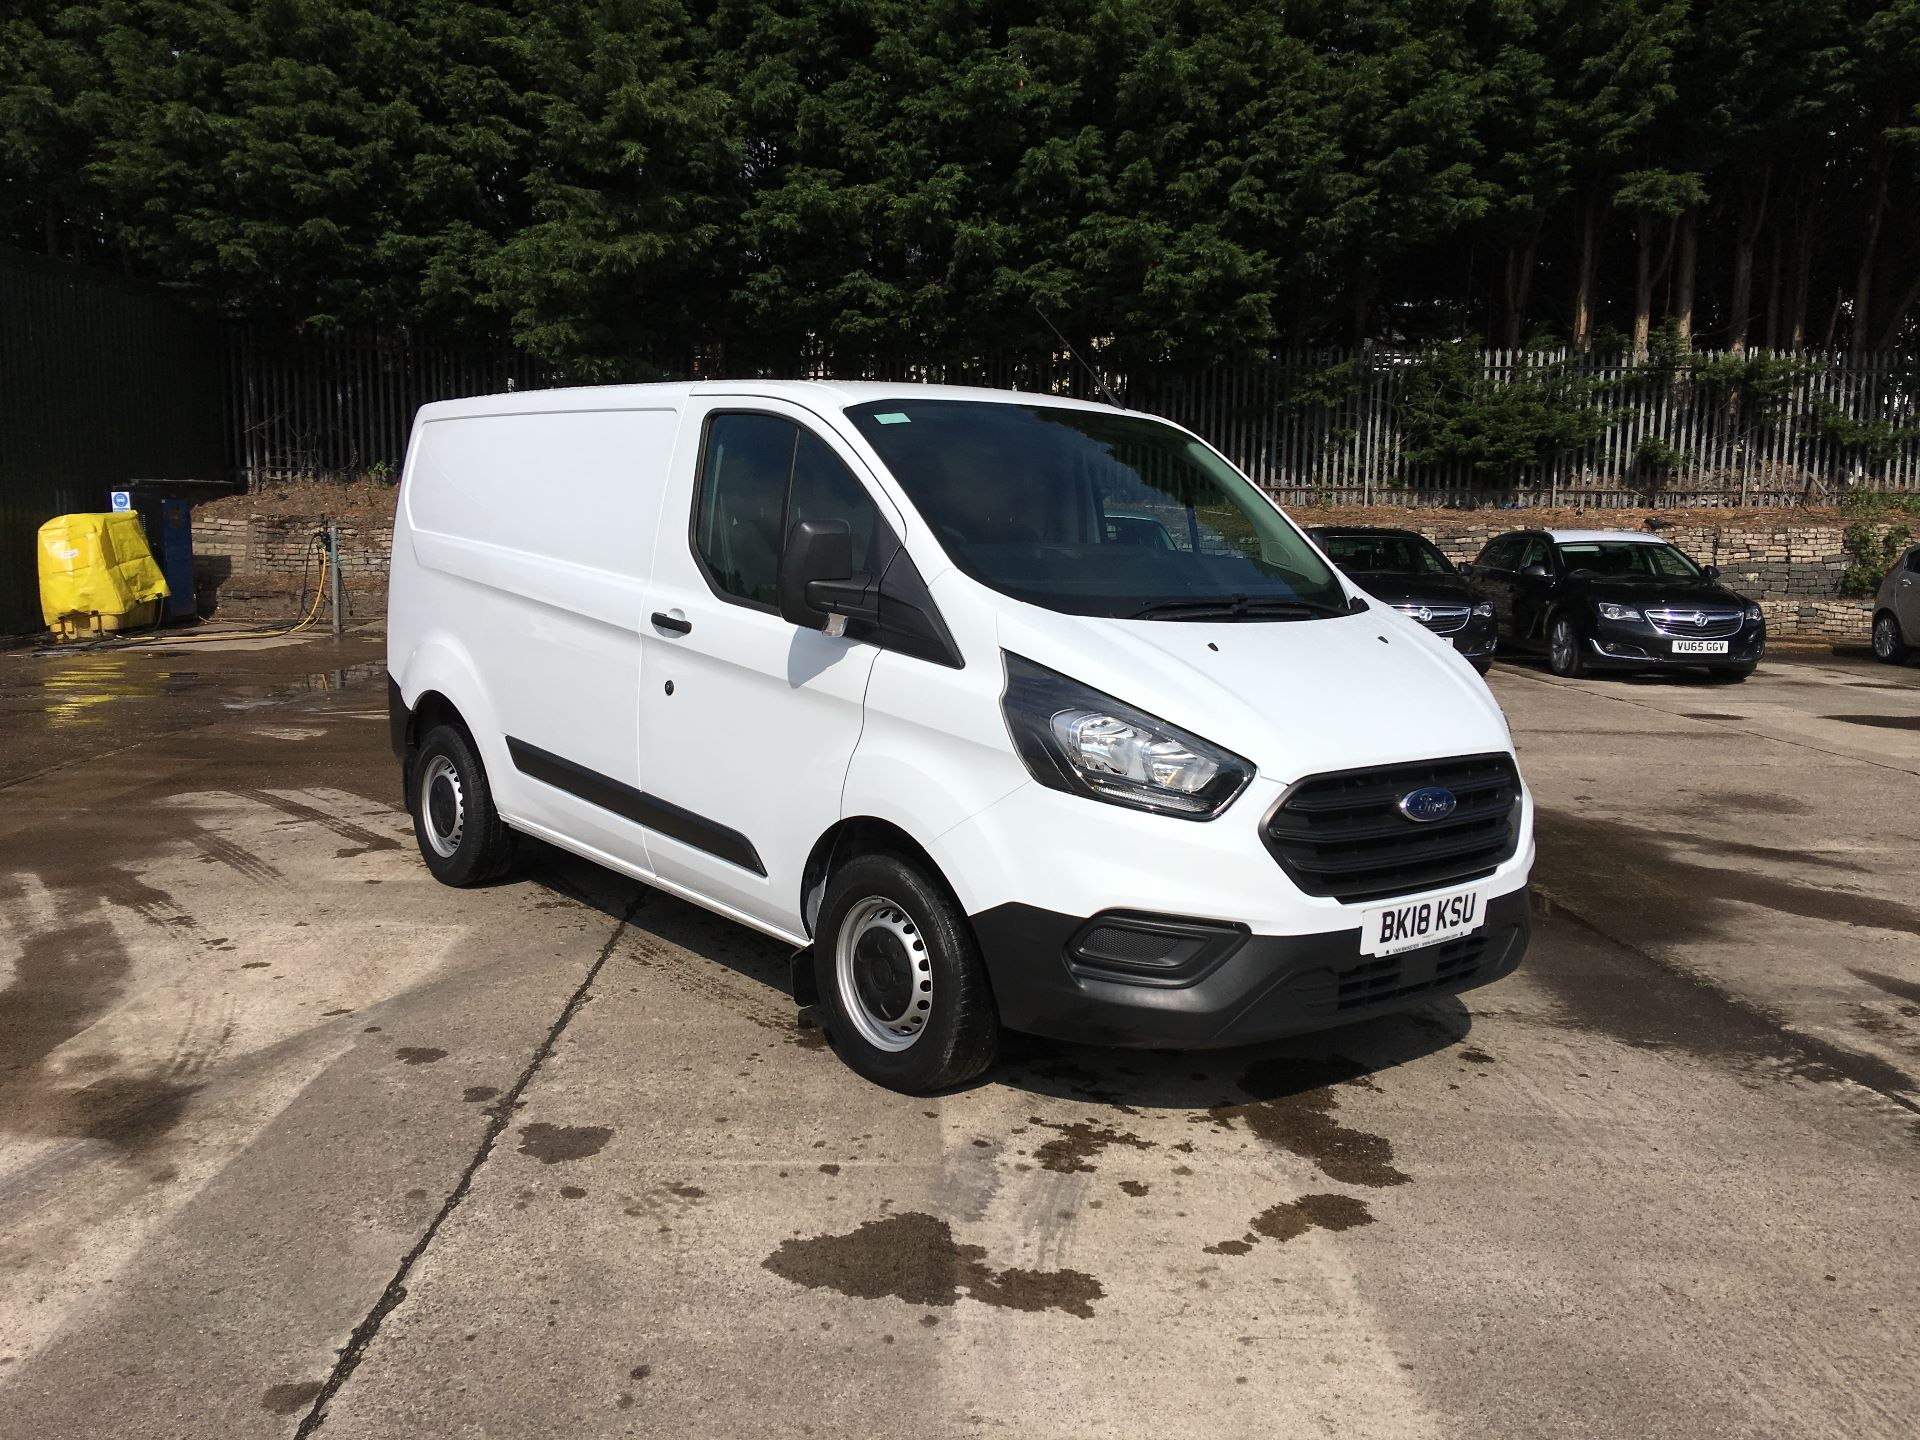 2018 Ford Transit Custom 300 L1 DIESEL FWD 2.0 TDCI 105PS LOW ROOF EURO 6 (BK18KSU)